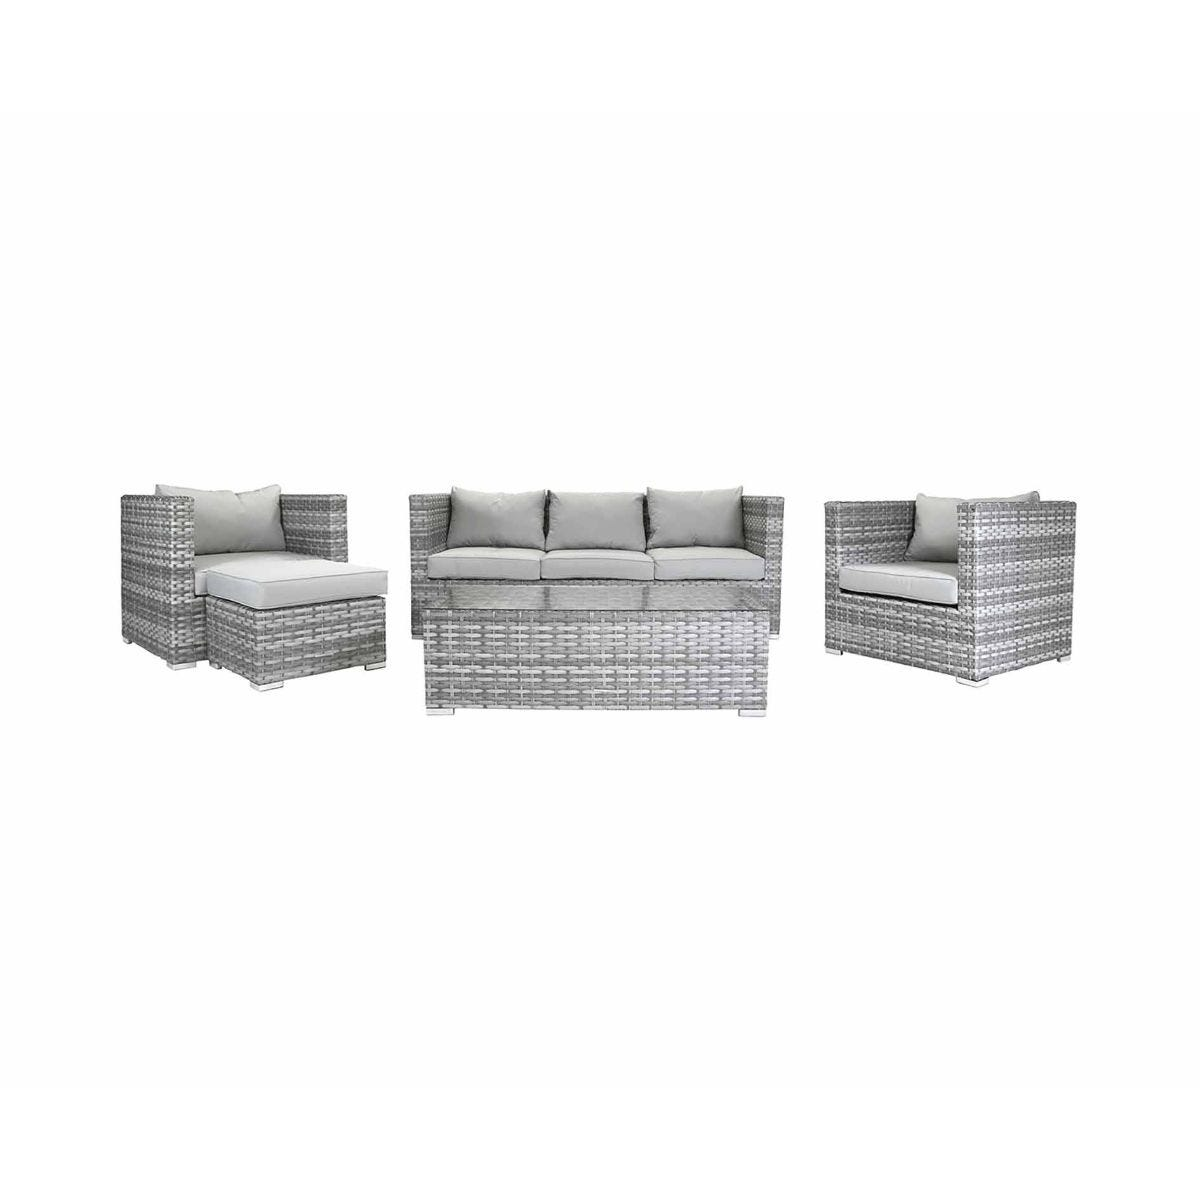 Charles Bentley Milano Rattan 5 Seater Garden Lounge Set, Grey